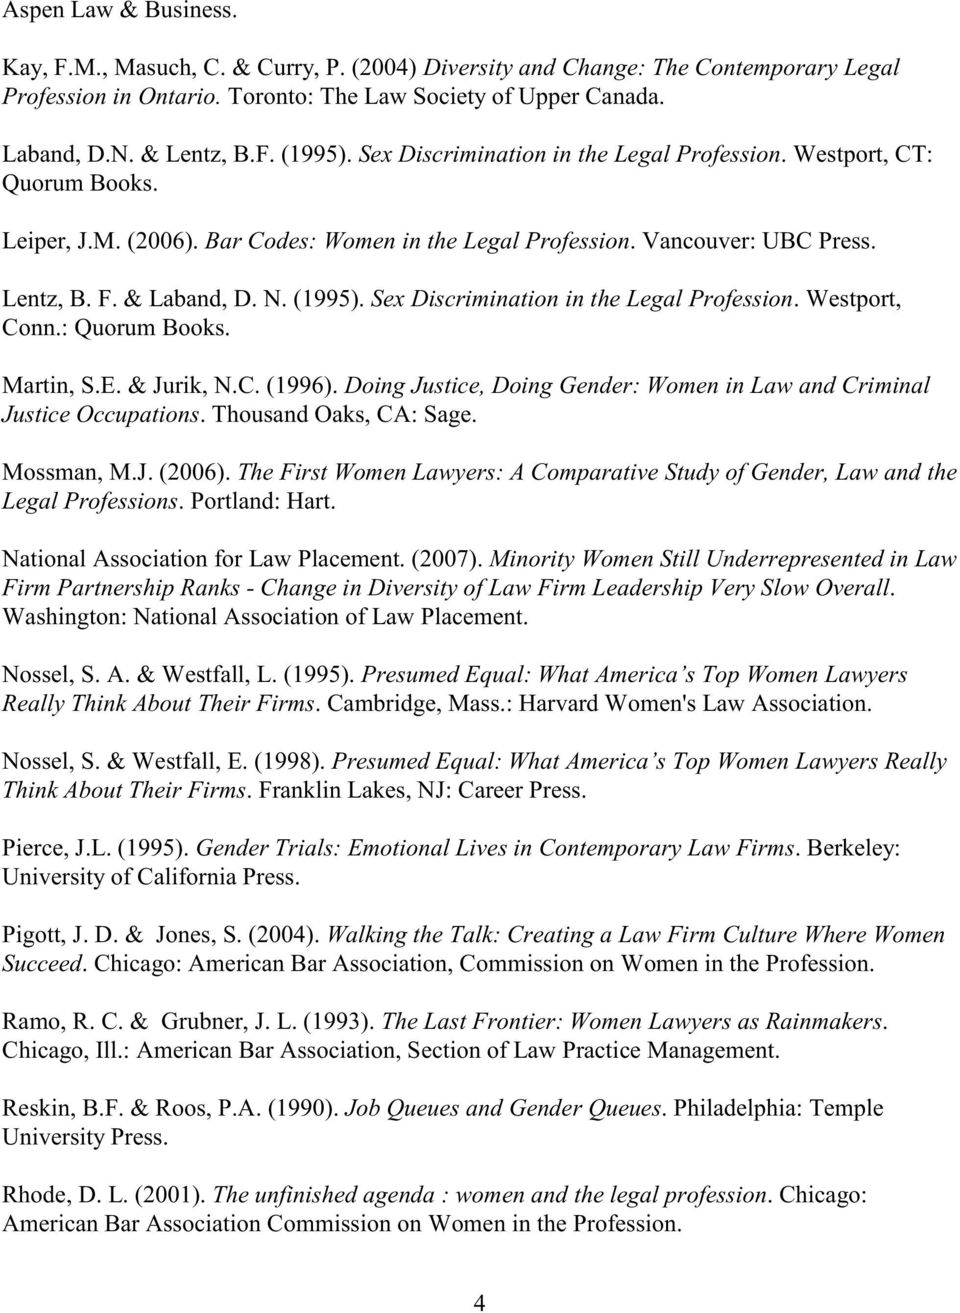 Sex Discrimination in the Legal Profession. Westport, Conn.: Quorum Books. Martin, S.E. & Jurik, N.C. (1996). Doing Justice, Doing Gender: Women in Law and Criminal Justice Occupations.